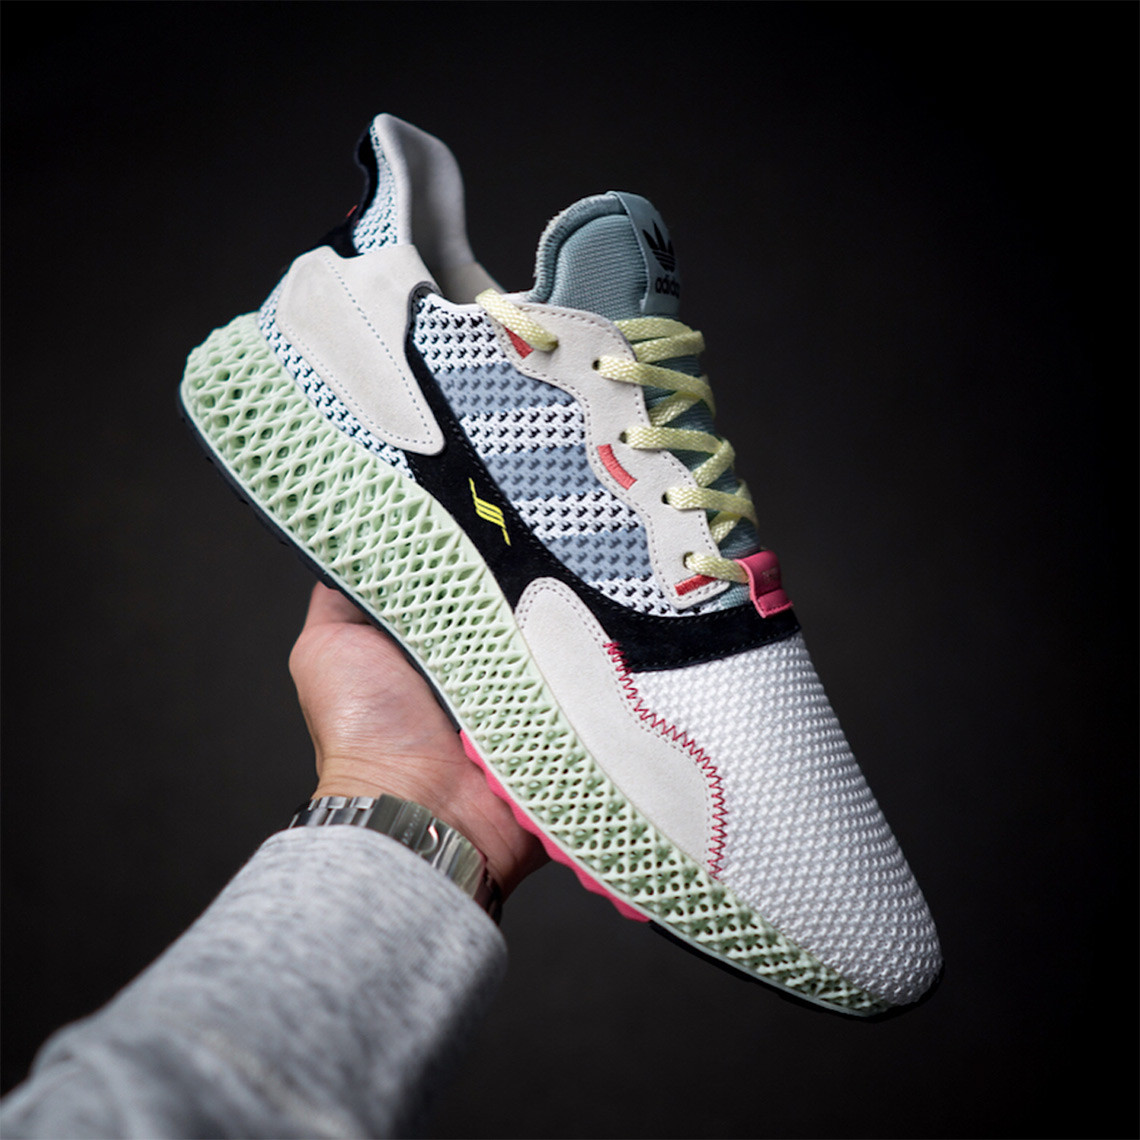 adidas-zx-4000-4d-white-release-201811